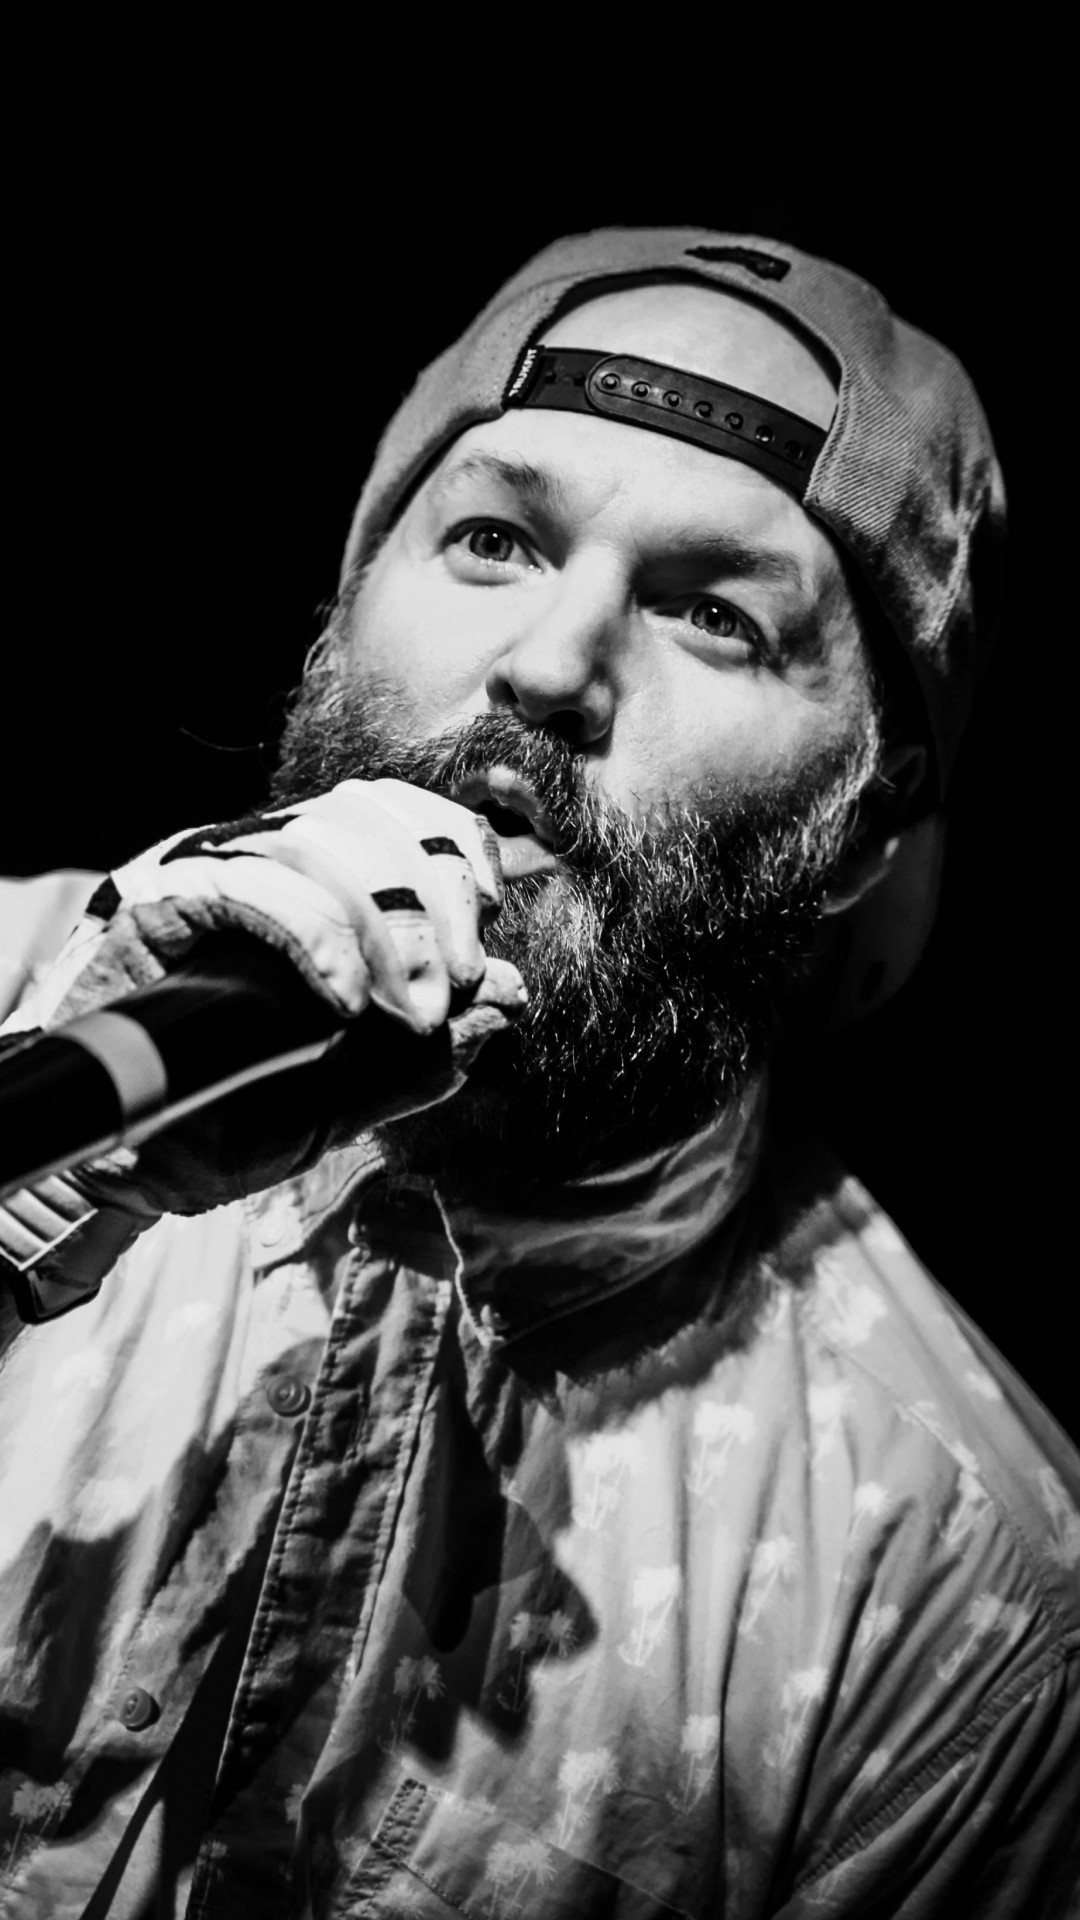 1080x1920 Fred Durst Limp Bizkit Music Rapcore Black White #iPhone #6 #plus #Wallpaper